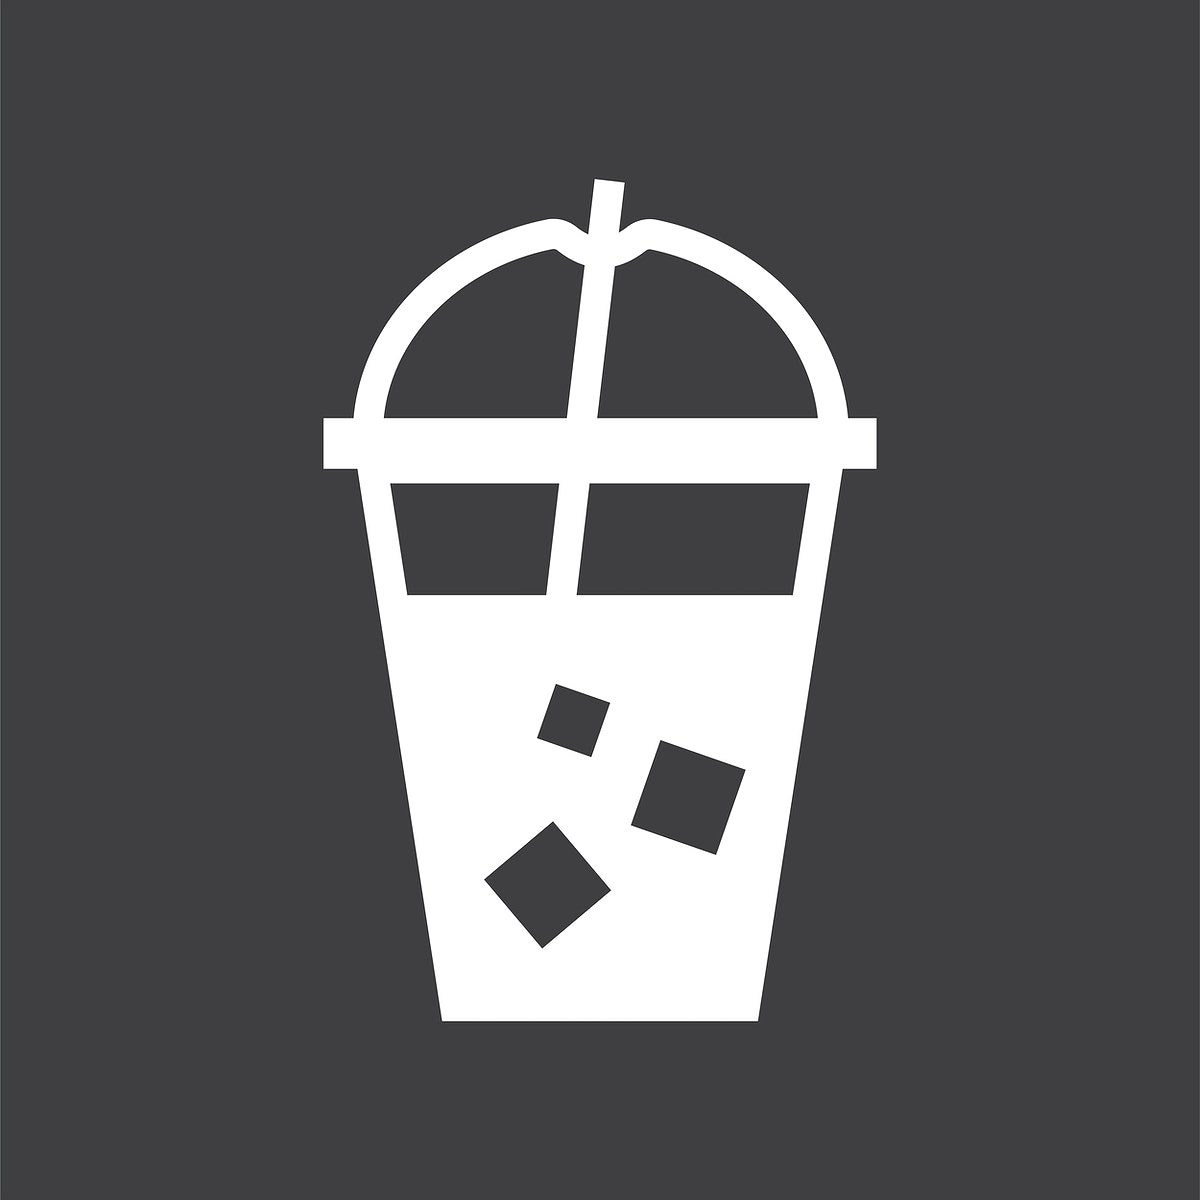 Cold drink in a plastic cup illustration